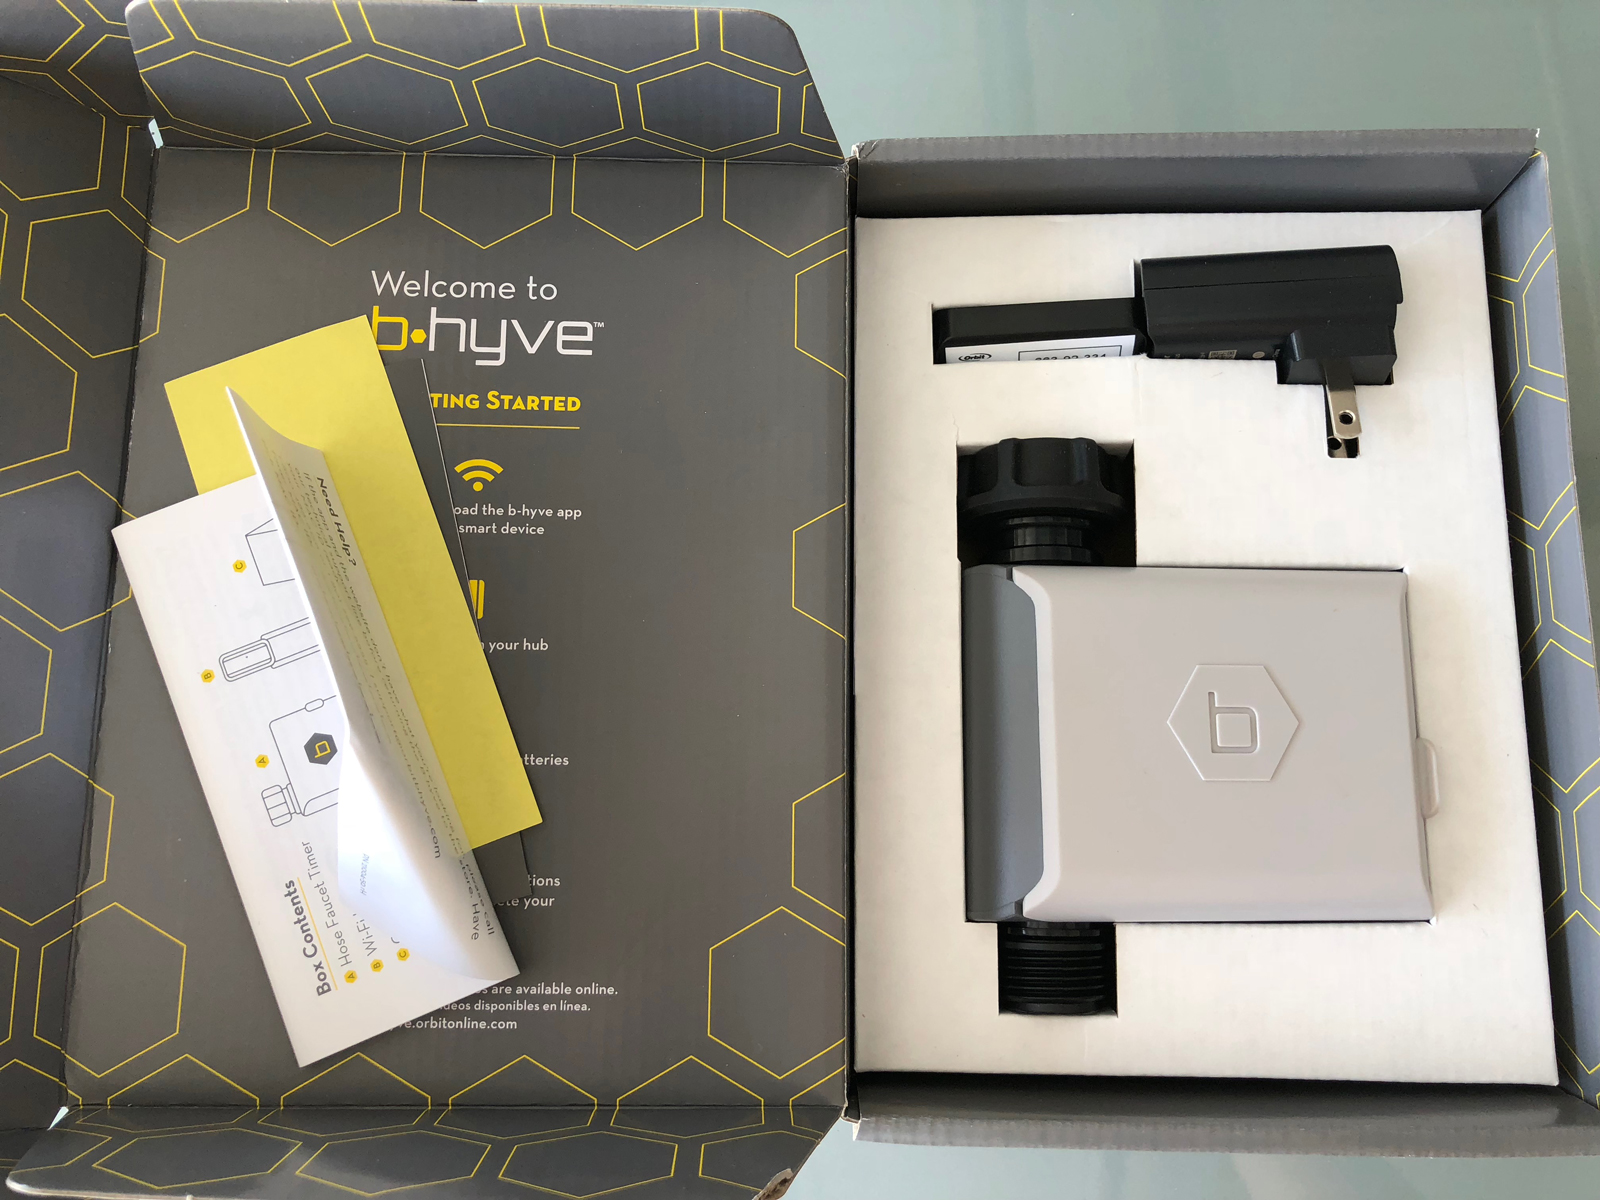 Orbit B-Hyve Hose Faucet Timer (review) – Homekit News and